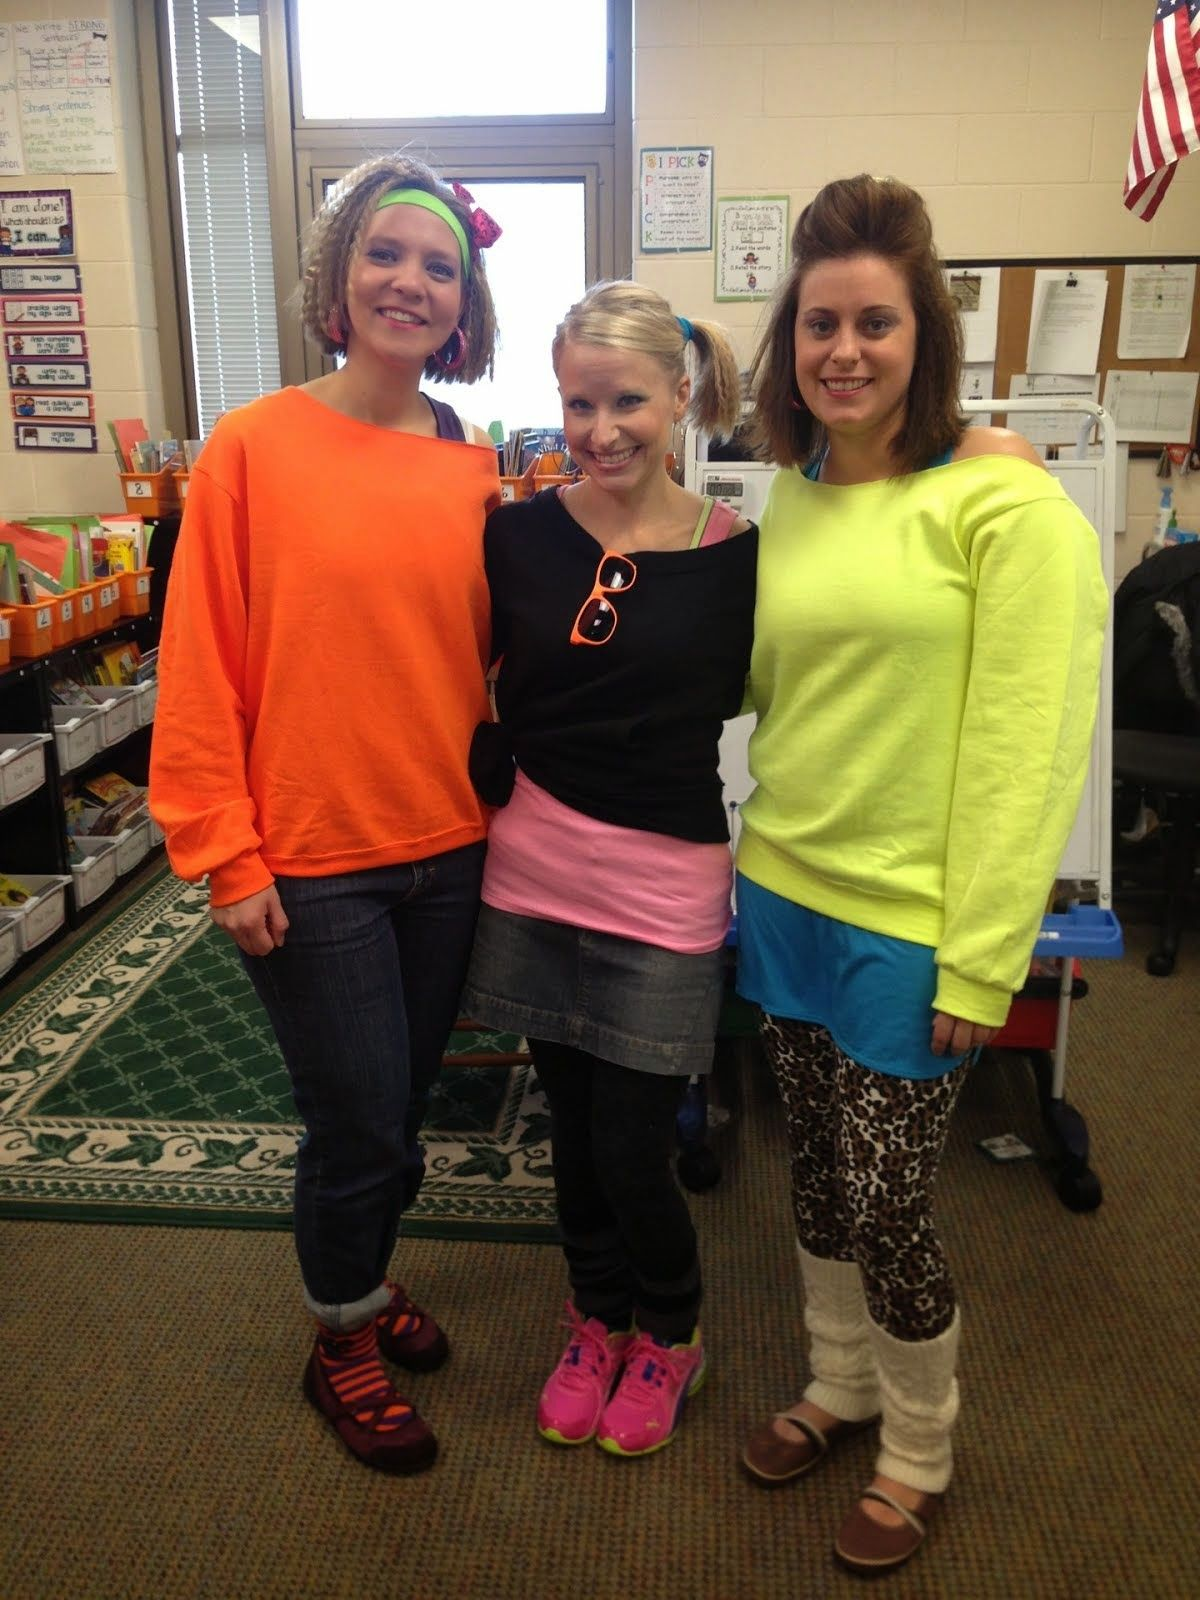 80\'s dress up day at school - Google Search | Halloween costumes ...